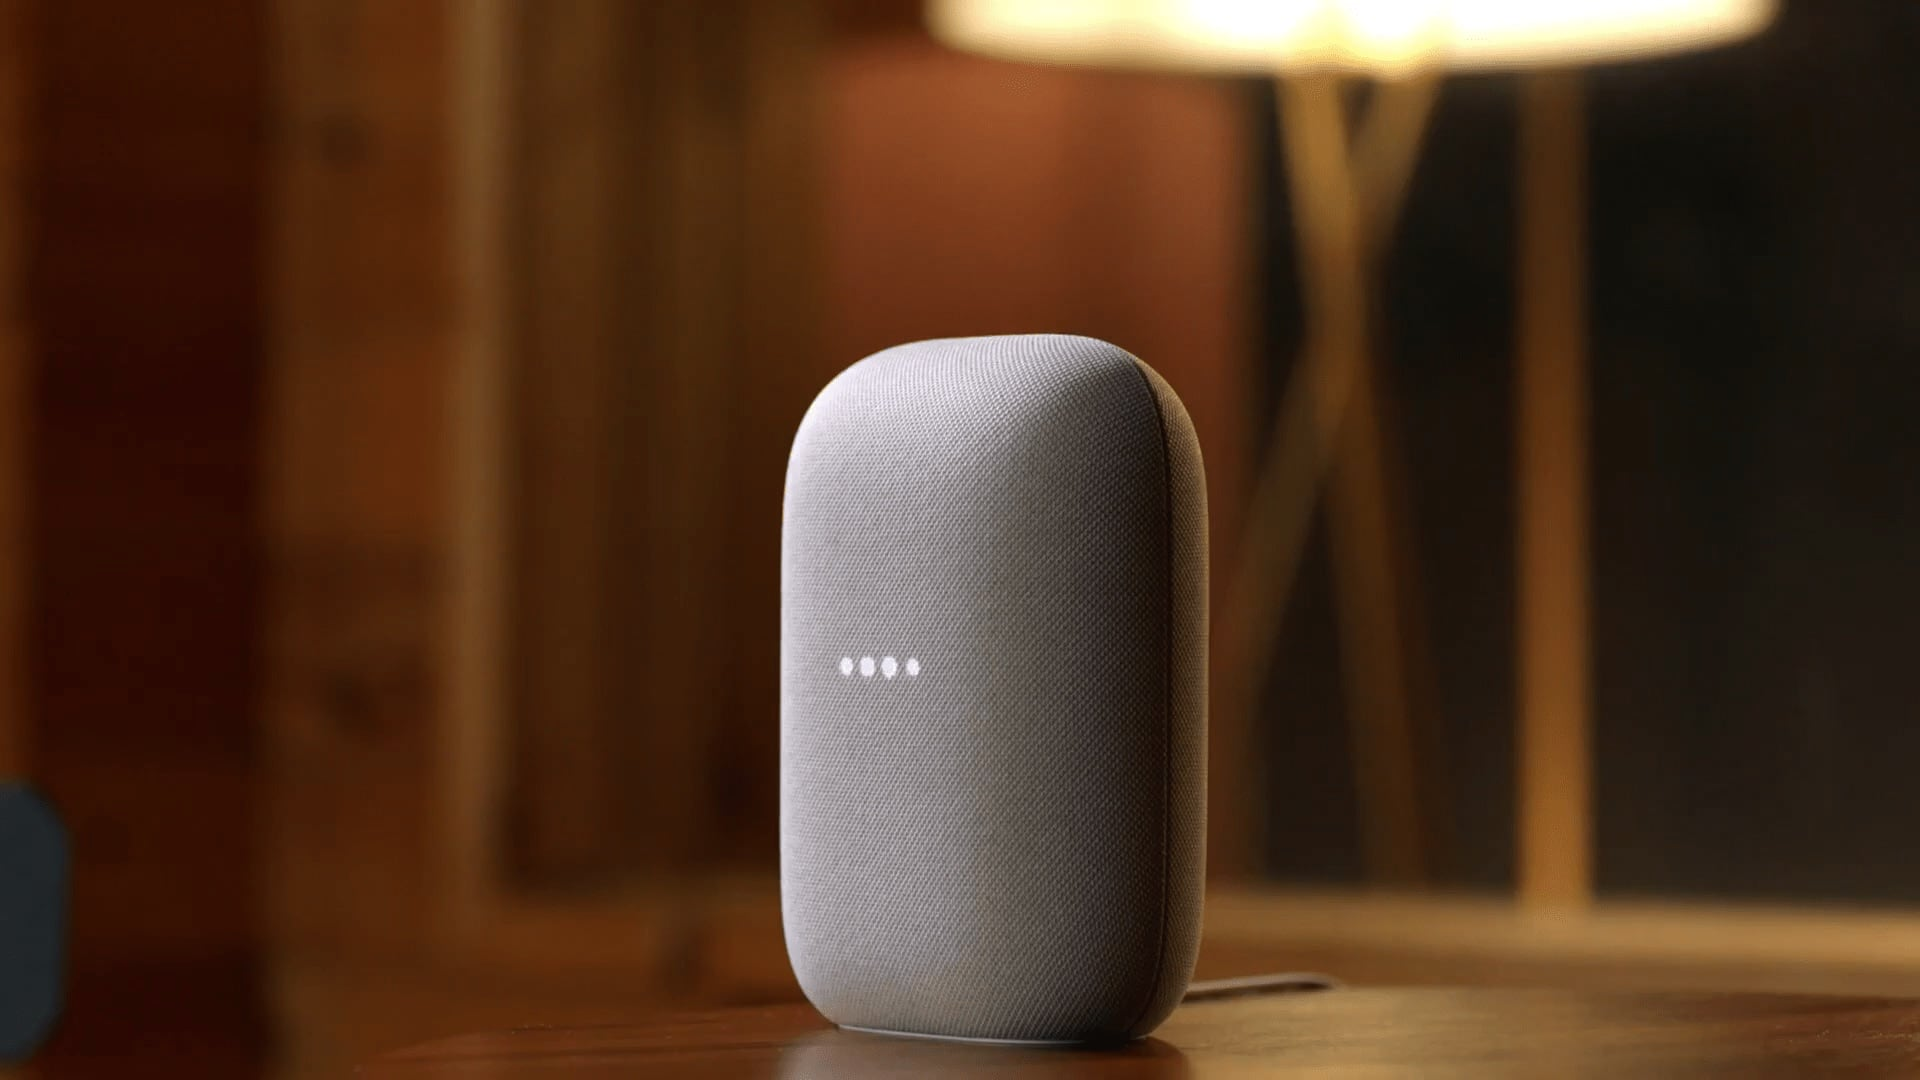 Google Nest Audio smart speaker delivers more bass and volume